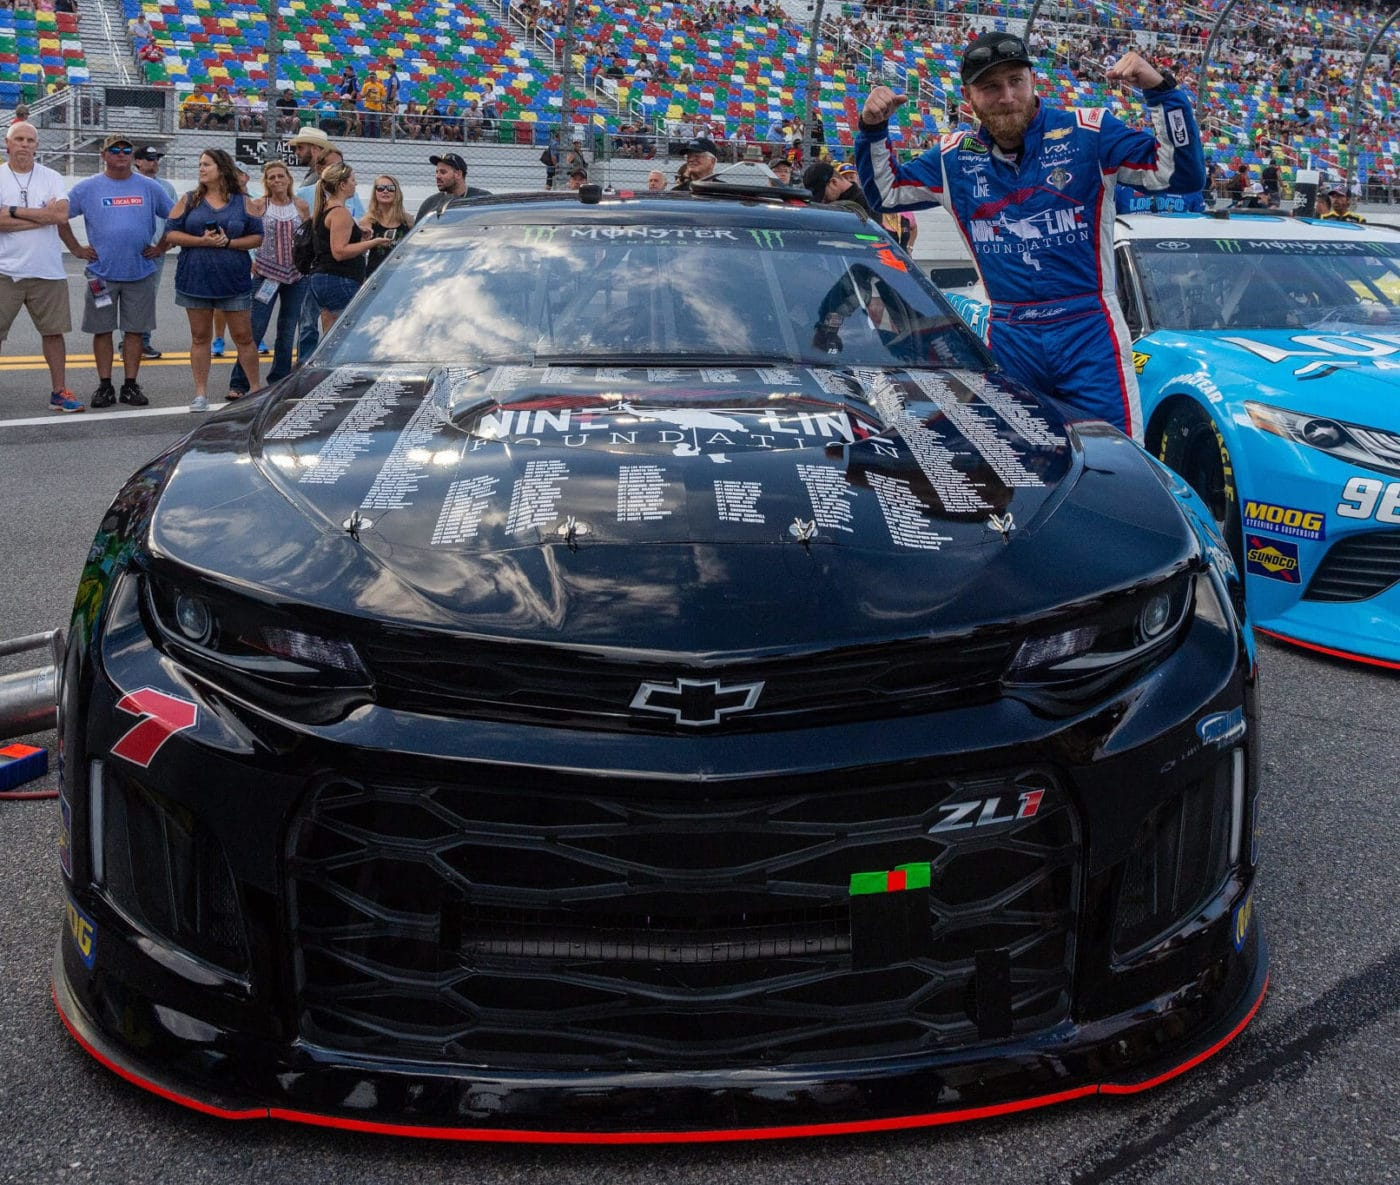 Jeffrey Earnhardt in front of his car, prior to the Daytona race